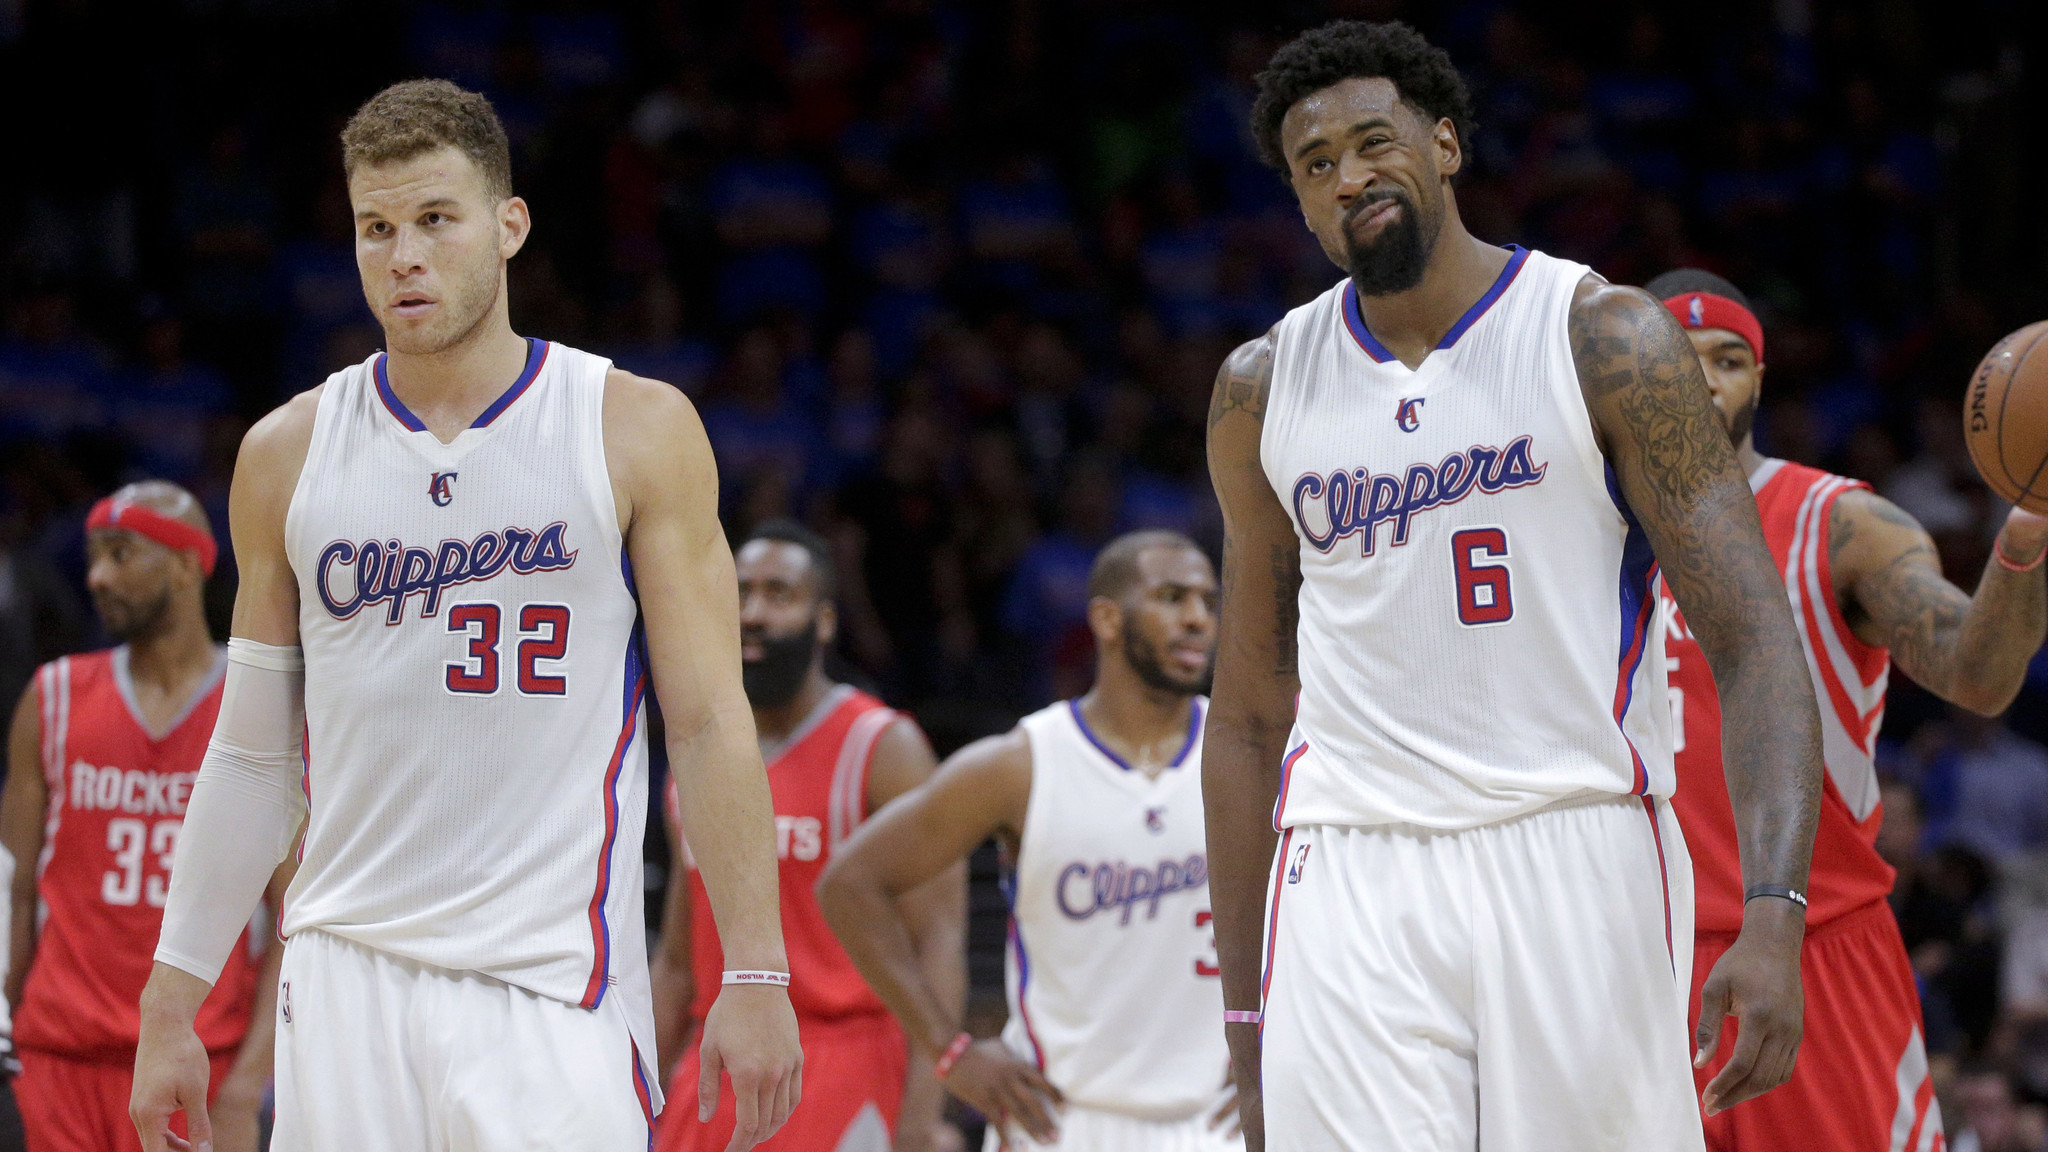 la-sp-cn-clippers-game-6-collapse-20150515